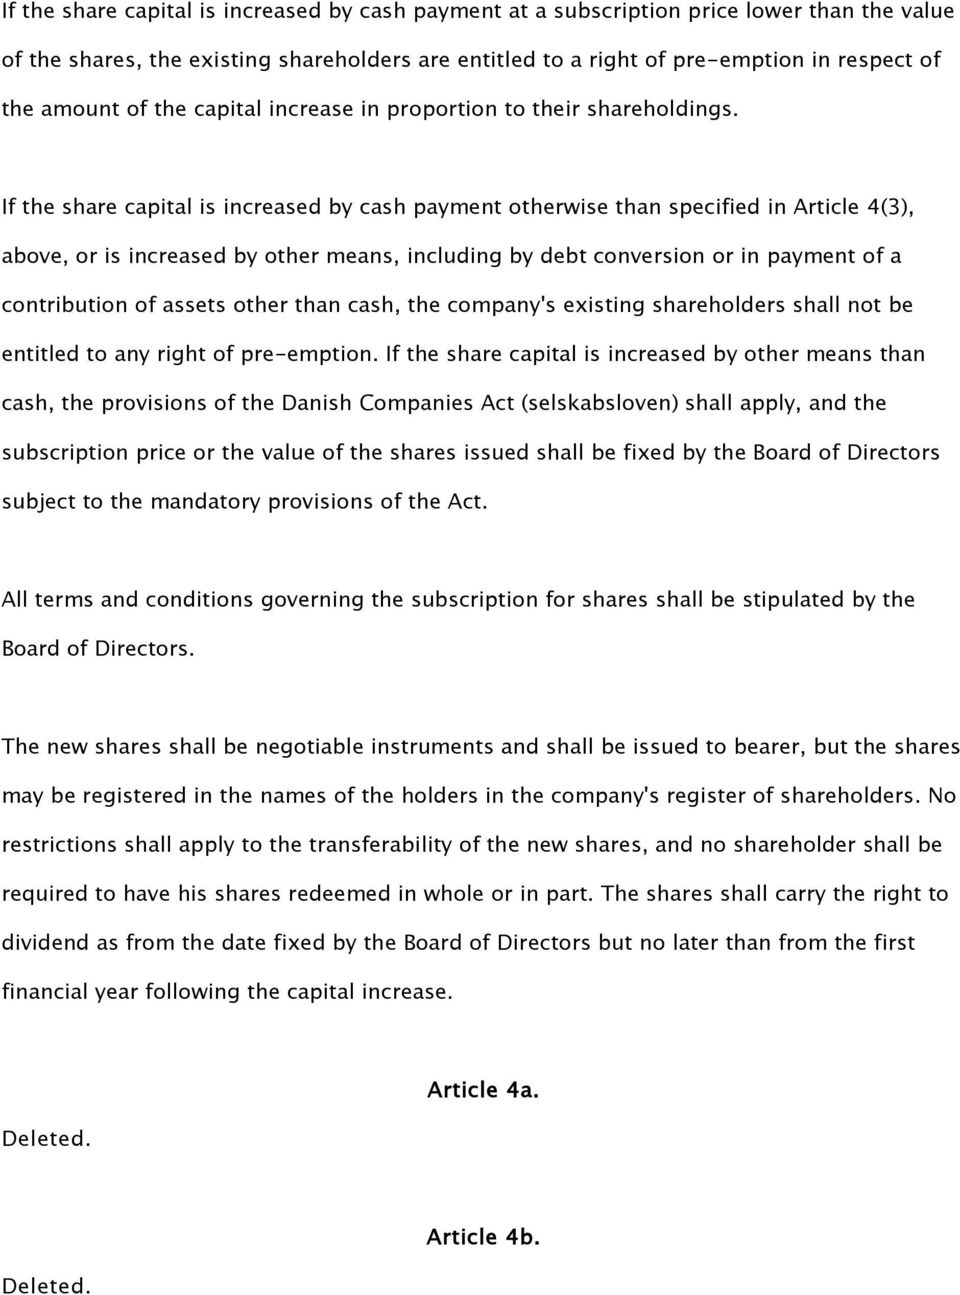 If the share capital is increased by cash payment otherwise than specified in Article 4(3), above, or is increased by other means, including by debt conversion or in payment of a contribution of